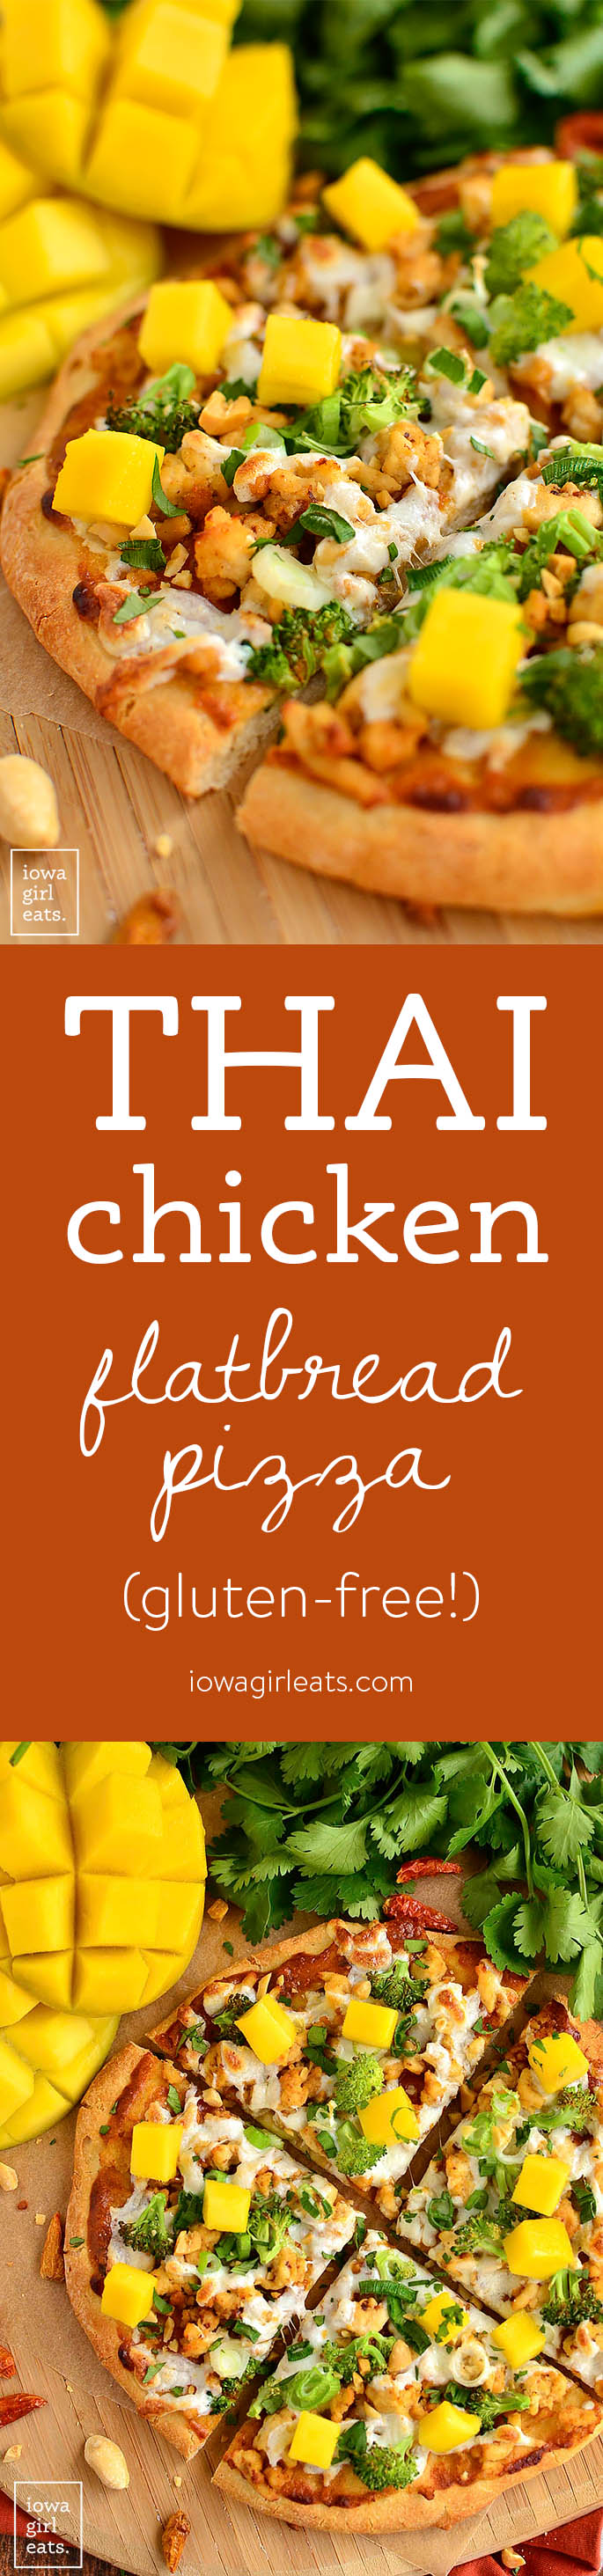 Switch up pizza night with gluten-free Thai Chicken Flatbread Pizza featuring savory peanut sauce, fresh herbs, and sweet mango. | iowagirleats.com